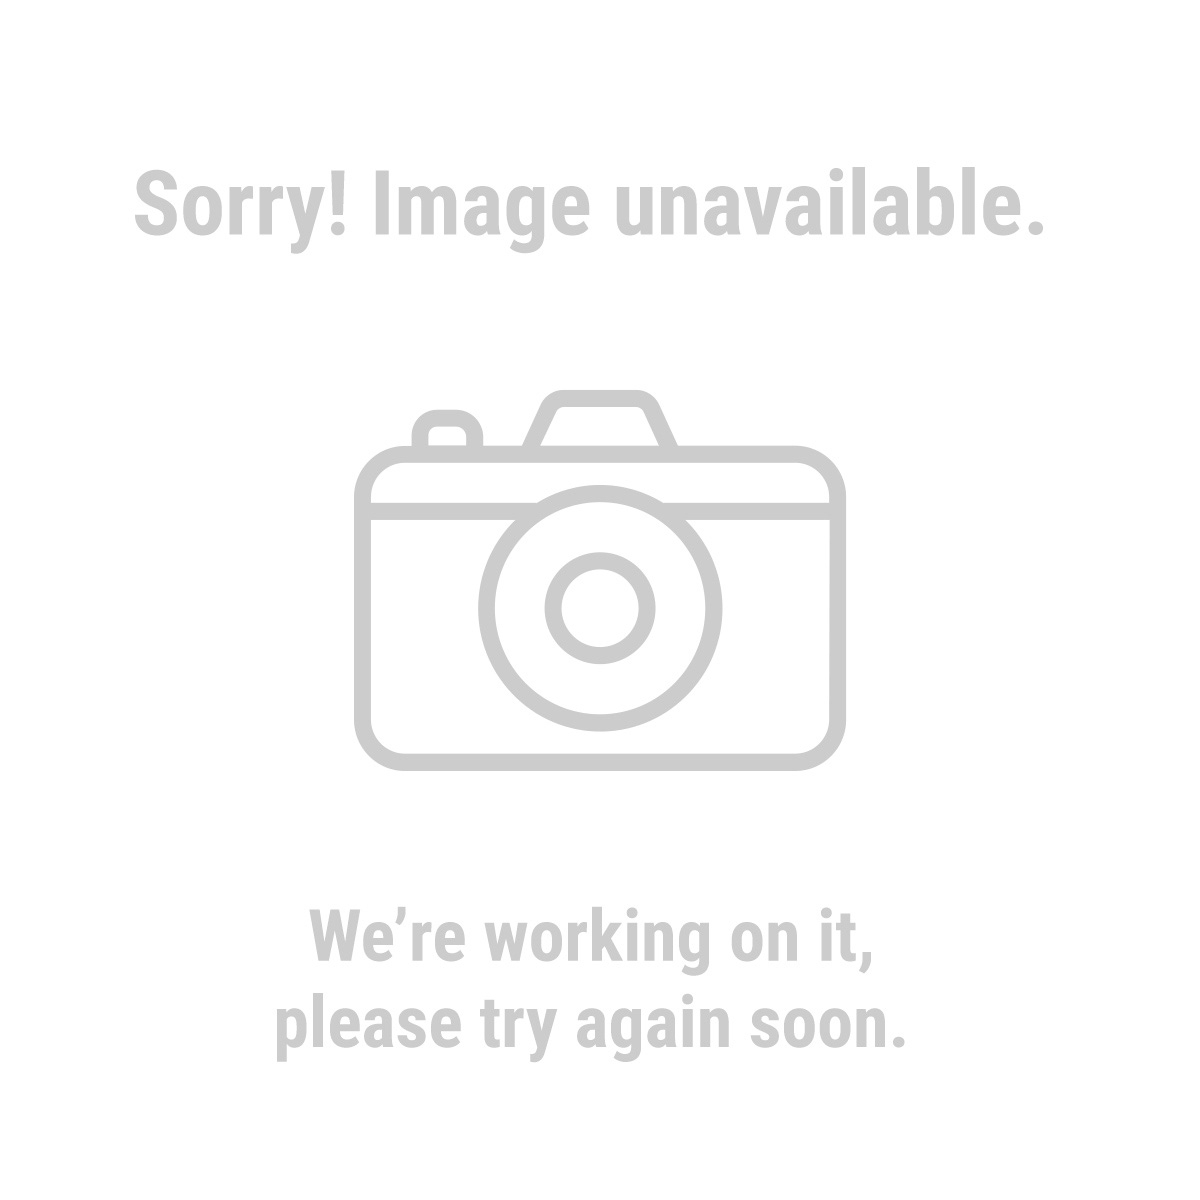 Central Pneumatic 69578 10 Ft. Braided Nylon Airbrush Hose